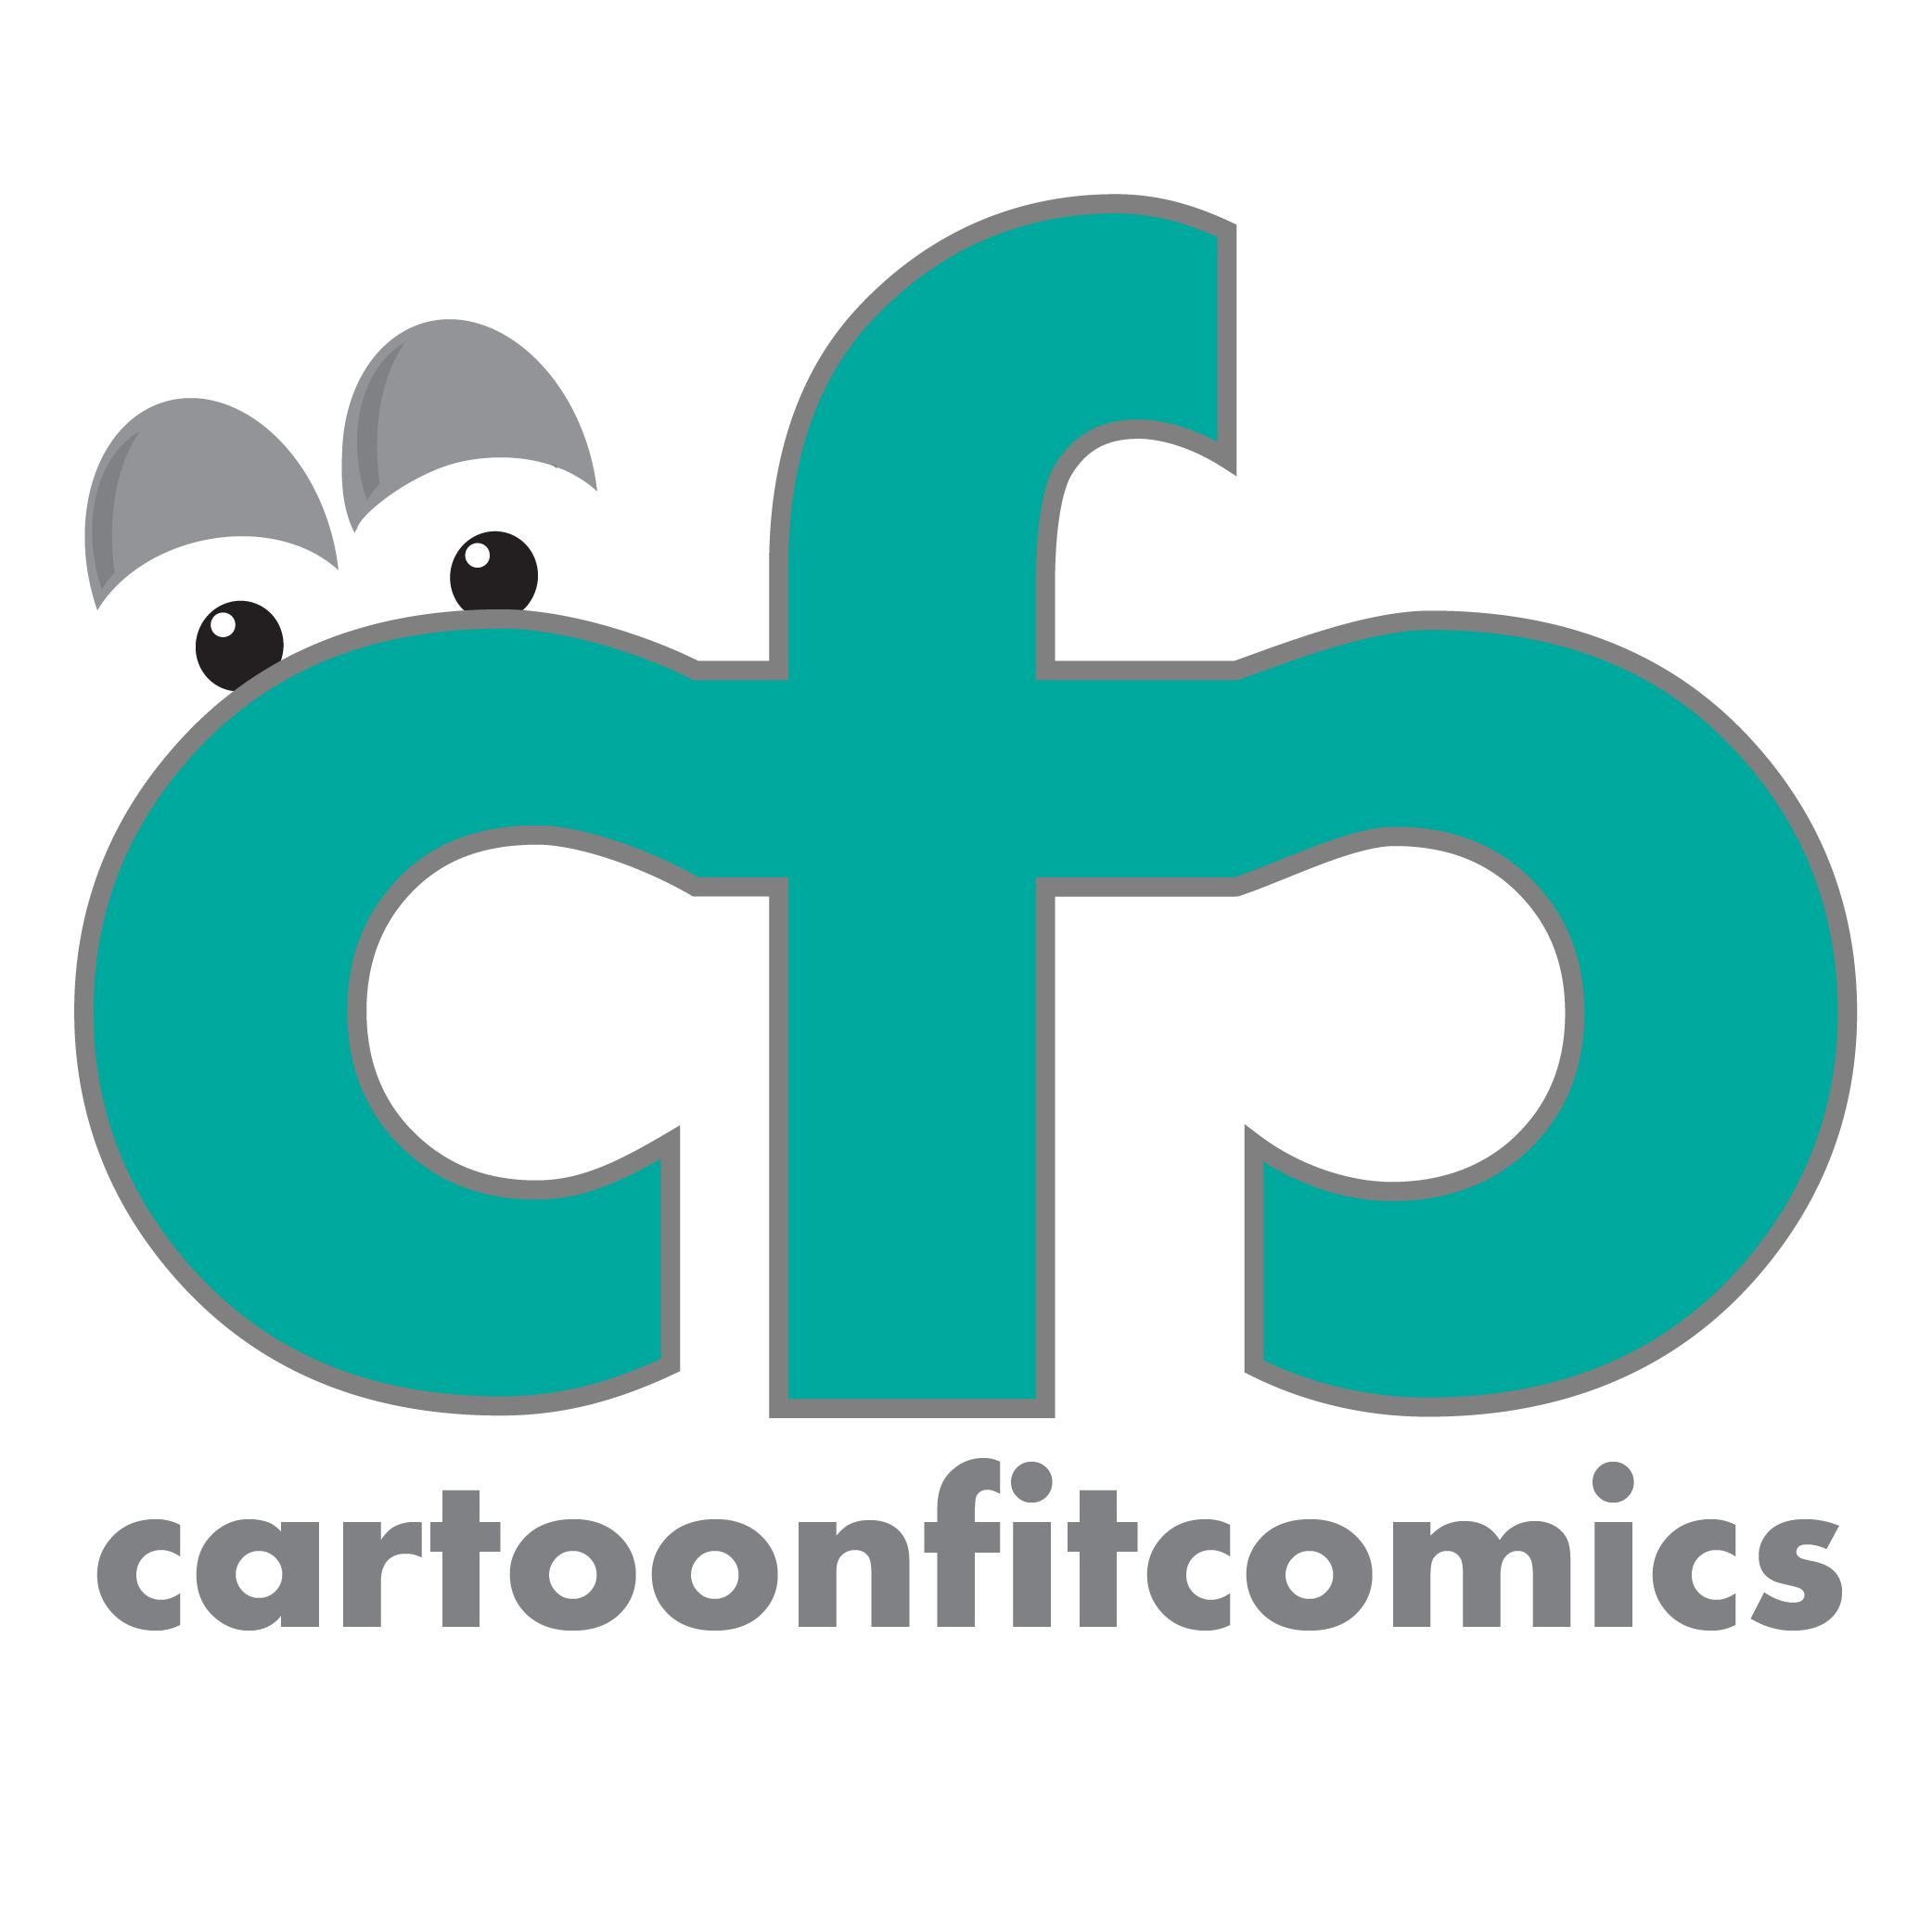 CartoonFit Comics Shop Logo